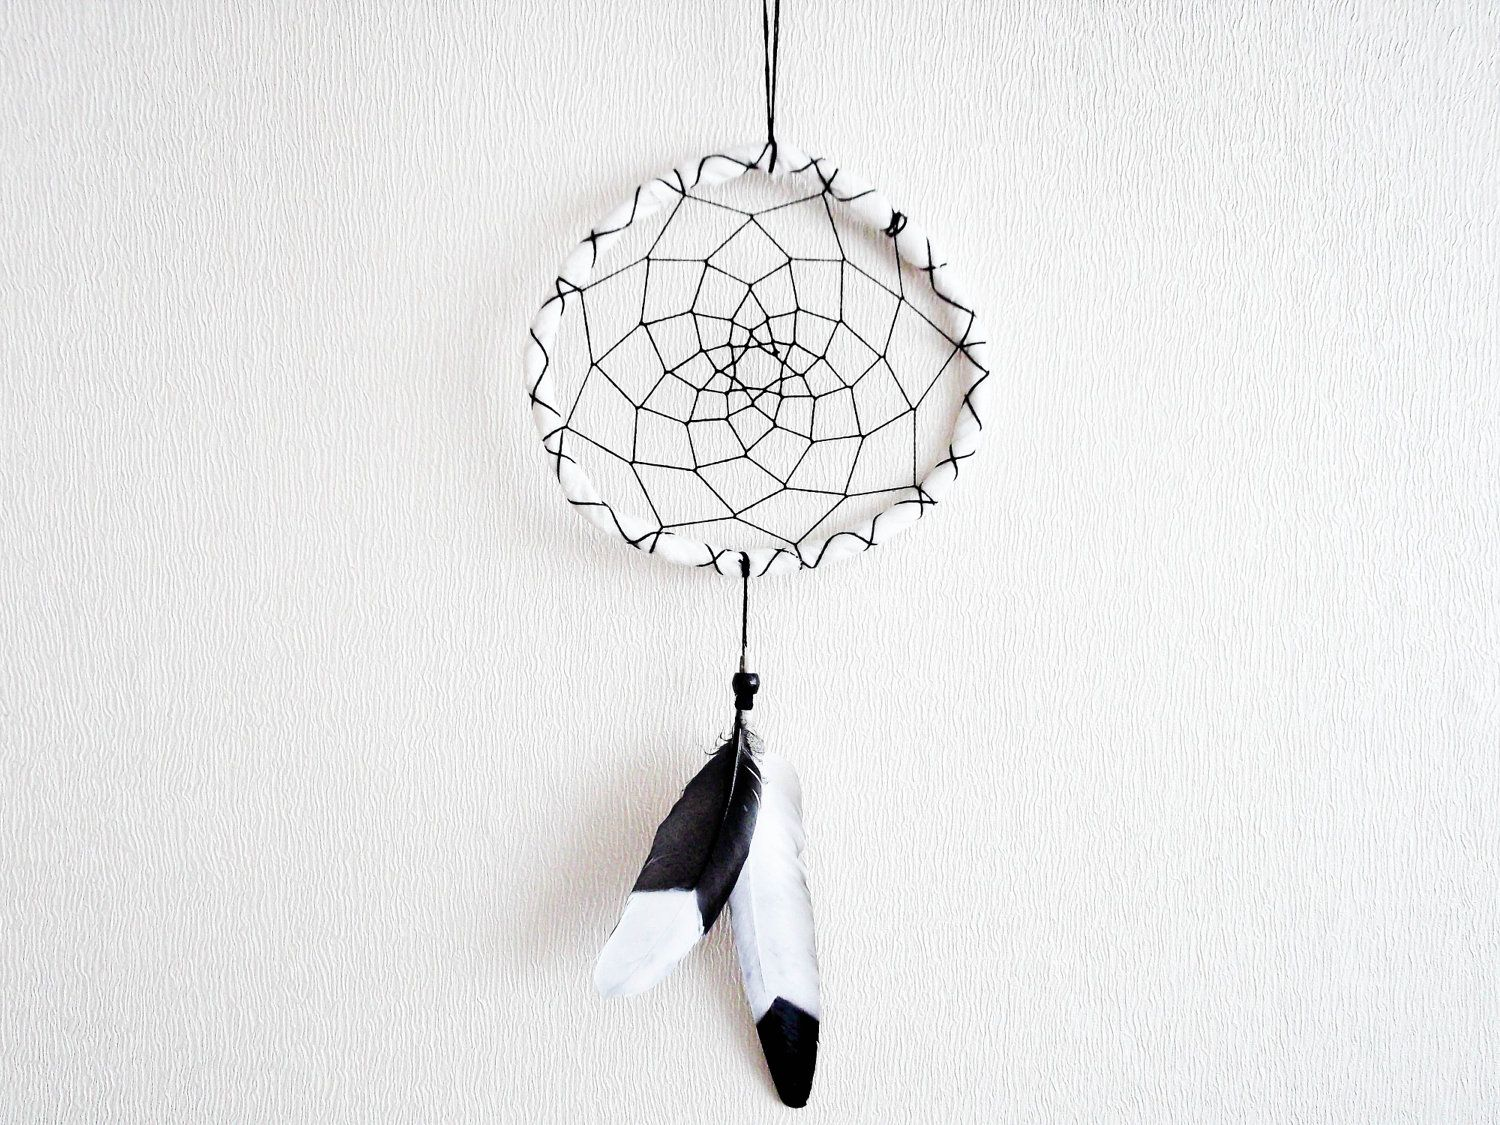 Dream Catcher - Black or White - With Painted Feathers, White Frame and Black Nett - Classic, Simple, Monocromatic - Home Decor, Mobile  I seriously need one asap!